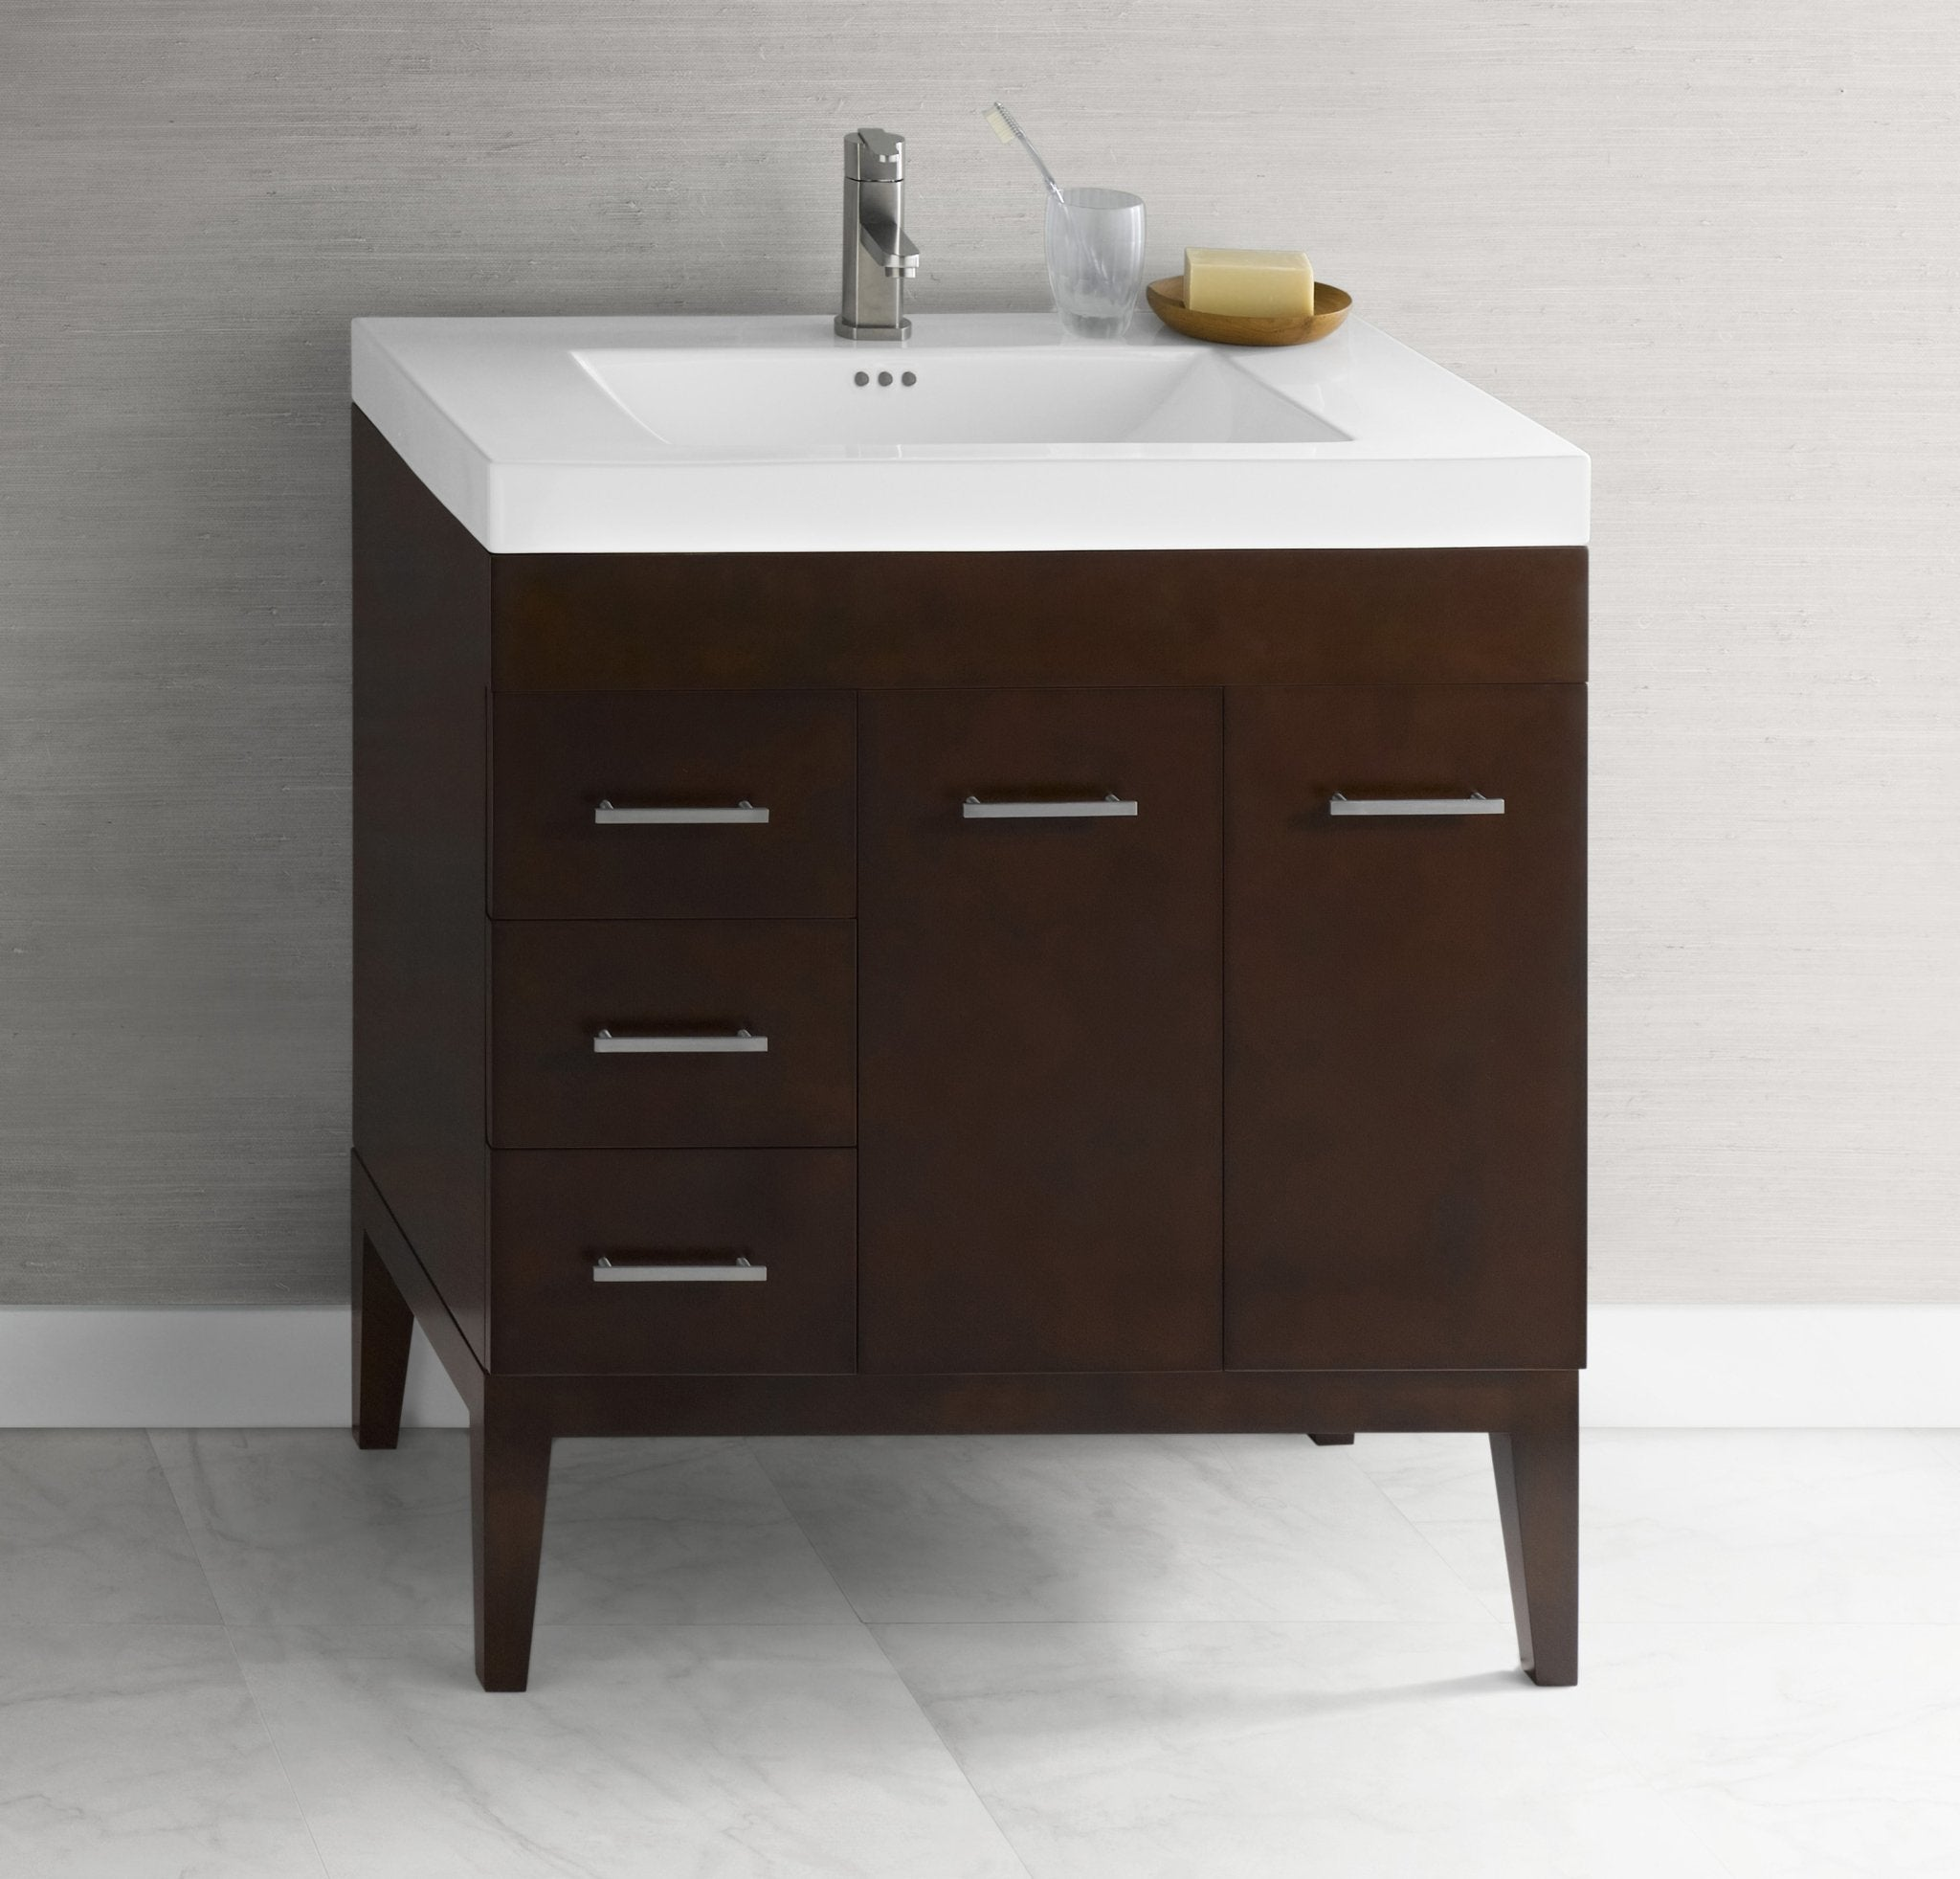 medicine decorating with cabinet recessed ideas gym bathrooms bathroom for linen sinks wall vanity units charming vanities home freestanding vessel mount